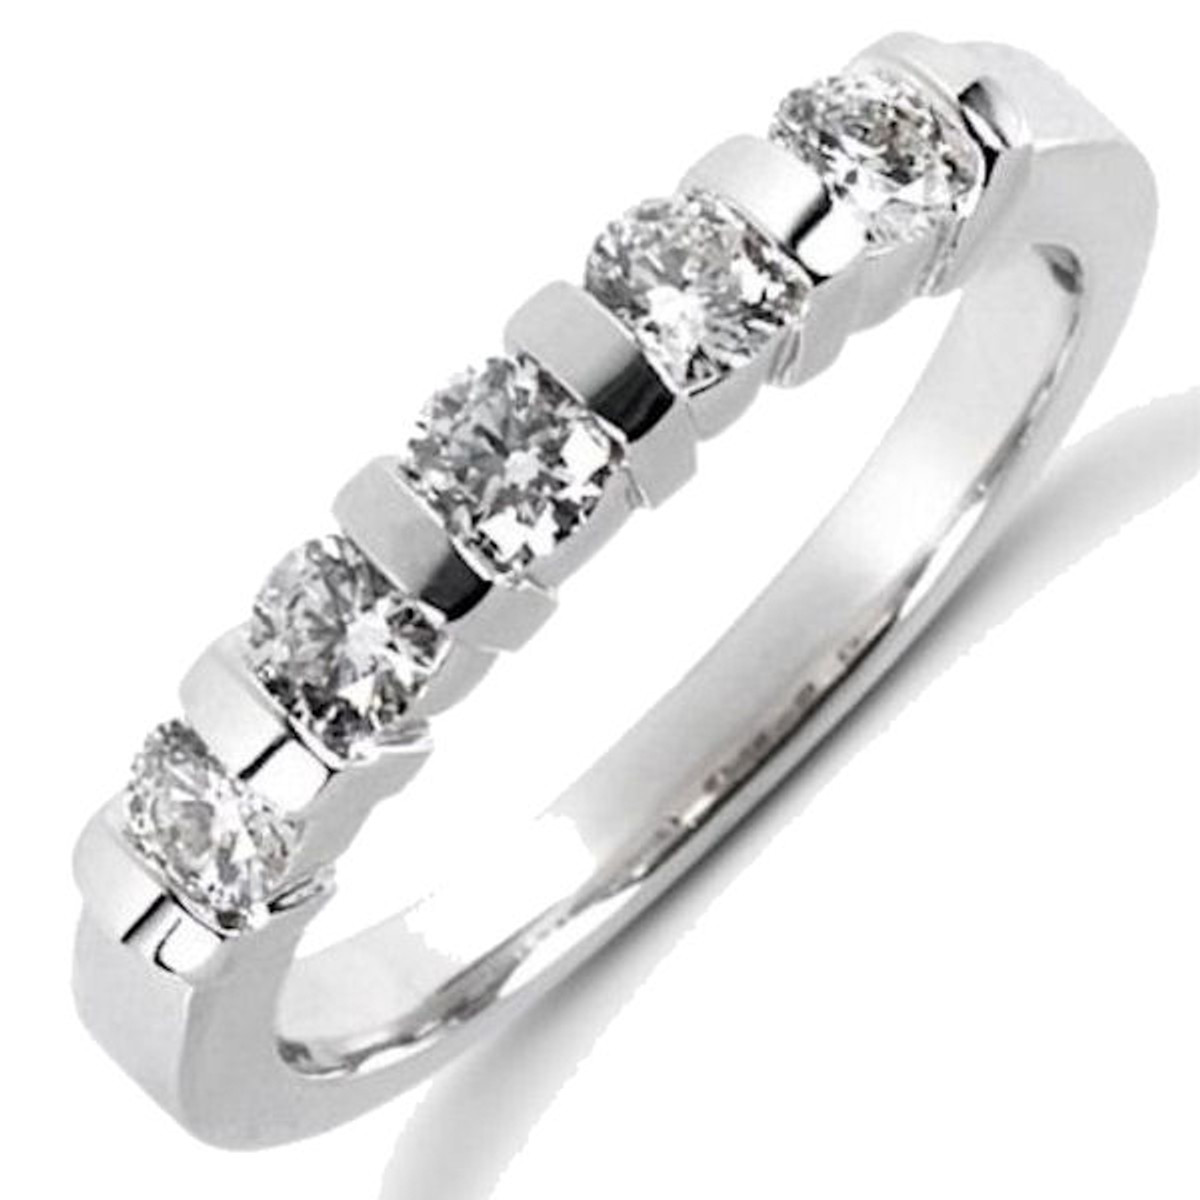 0.50 Ct Tw 5 stone diamond anniversary ring